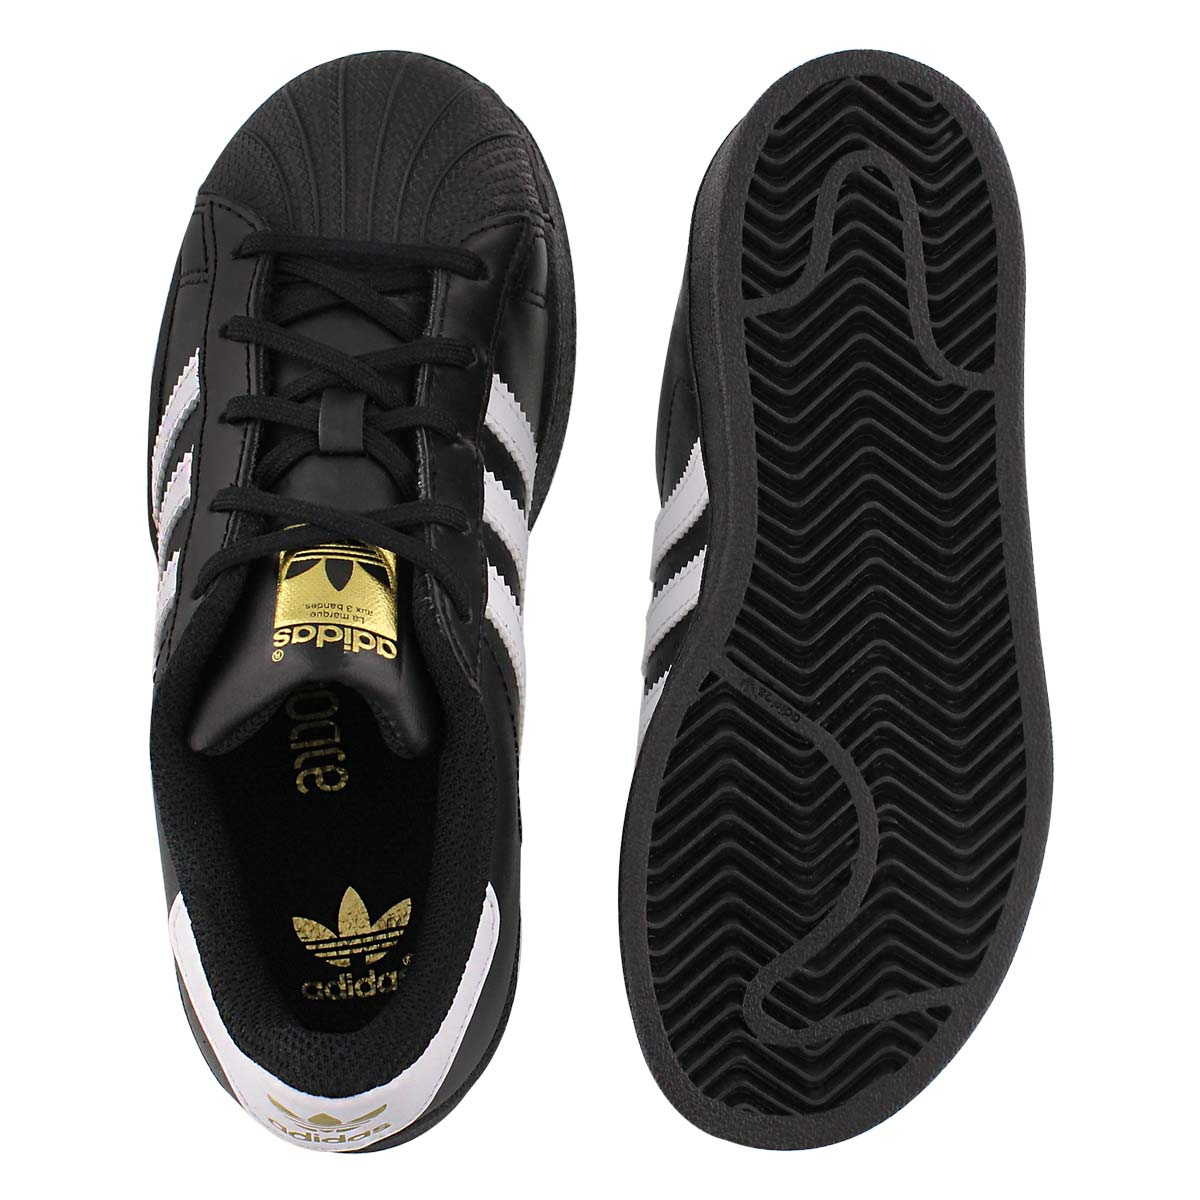 Bys Superstar blk/wht lace up sneaker